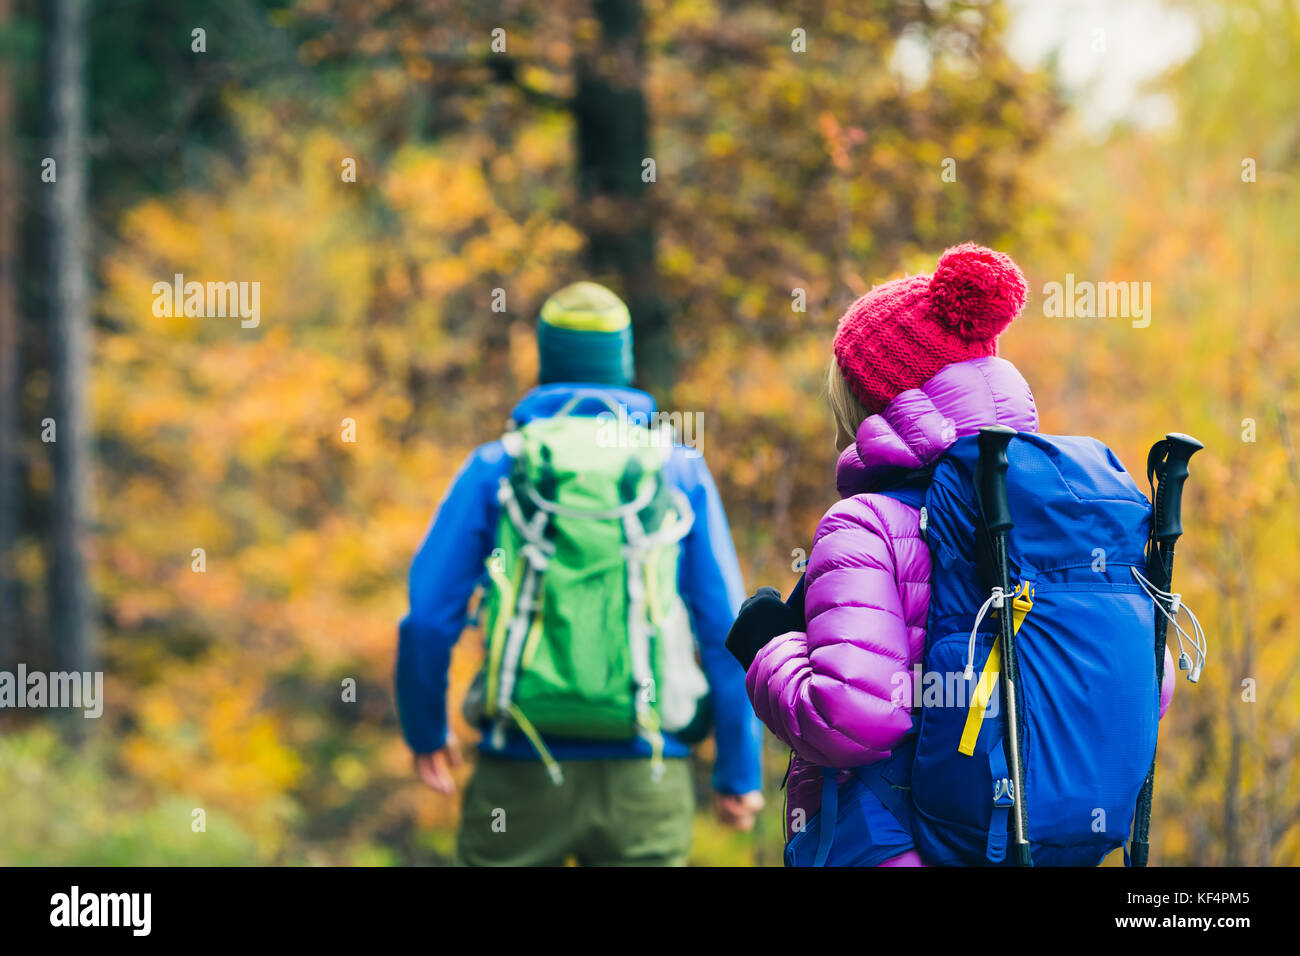 Happy couple hikers trekking in beautiful yellow autumn forest and mountains. Young people man and woman walking - Stock Image